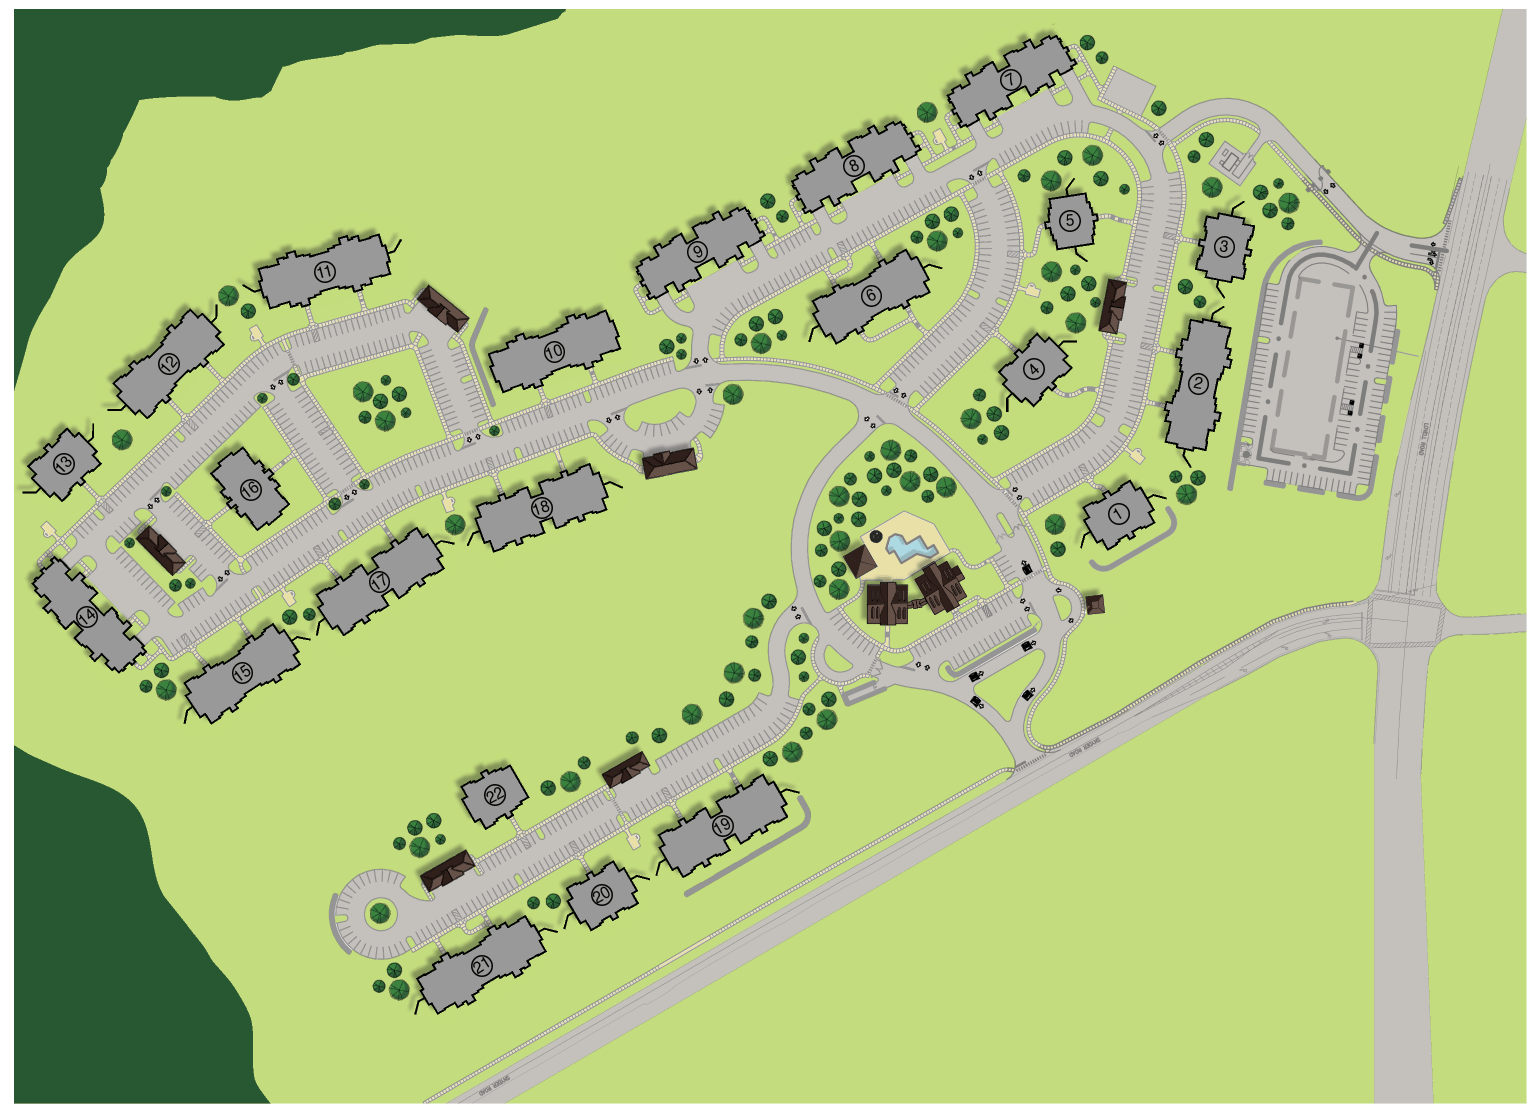 Greystone Pointe Knoxville, TN Site Plan